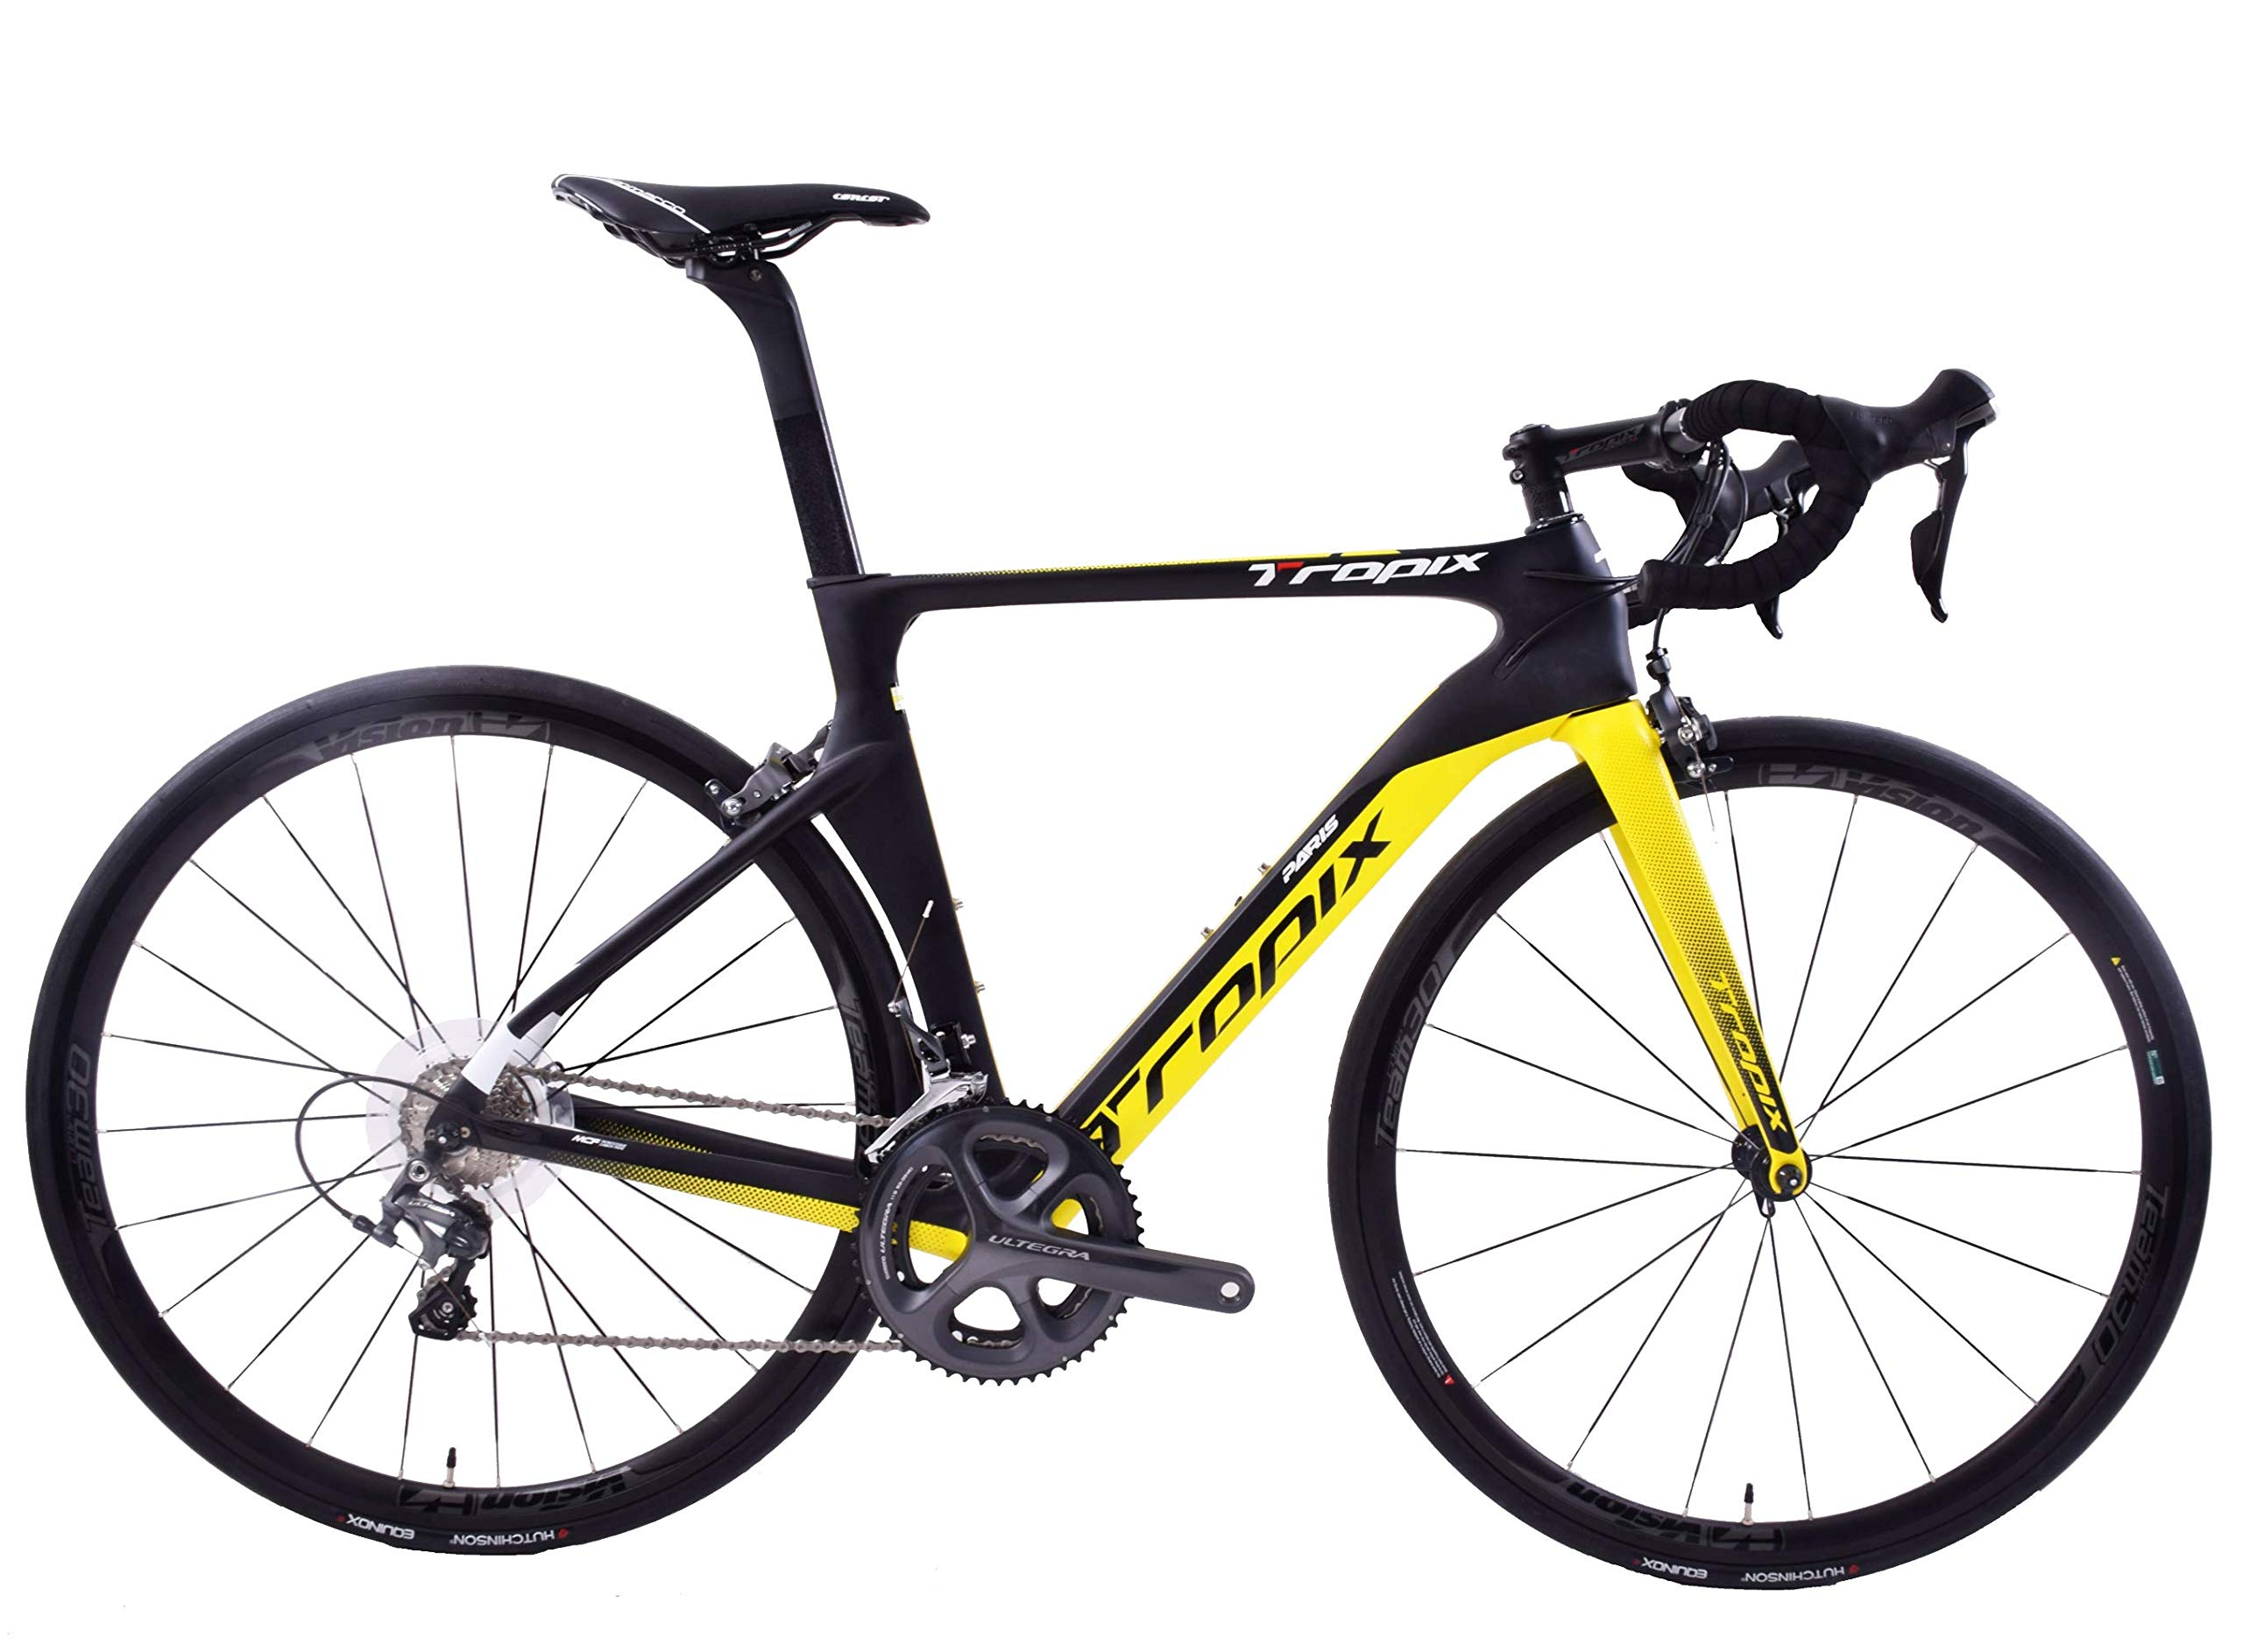 81ypW5bOItL - Tropix Paris 700c Wheel Road Racing Bike 52cm Lightweight Carbon Fibre Frame Shimano Ultegra 22 Speed Black/Yellow 8.3 Kgs